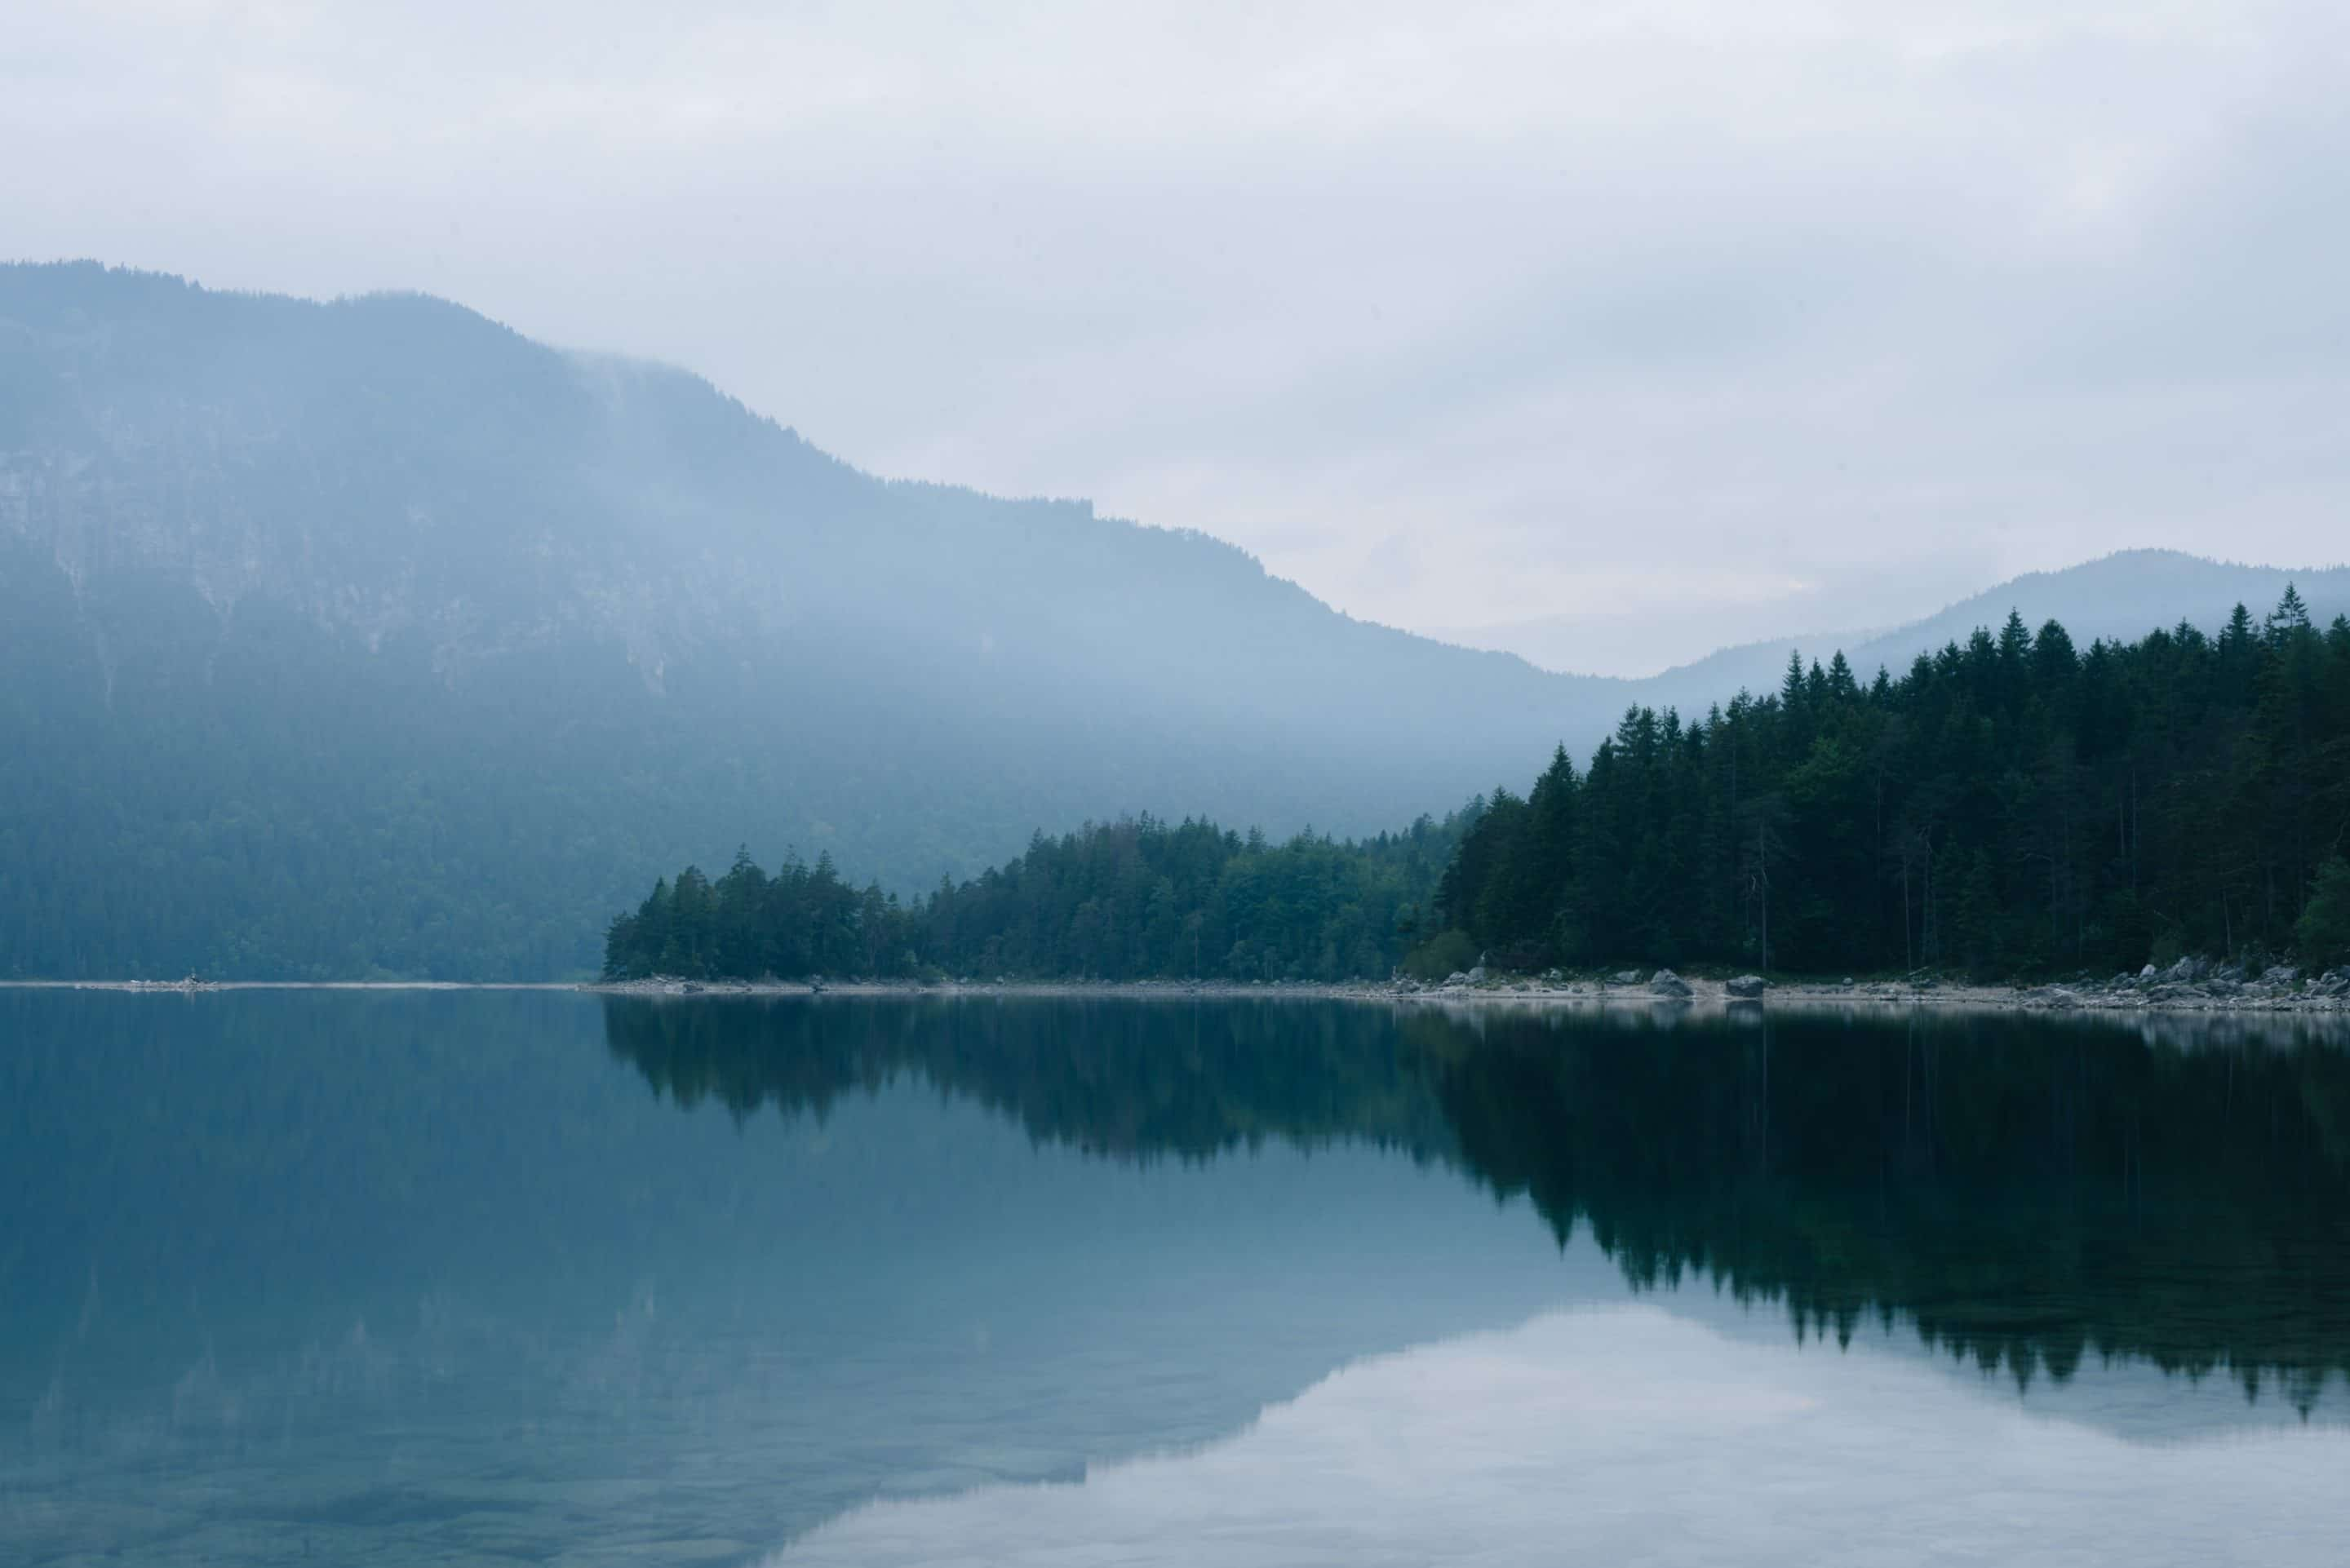 Memories from a moody morning in the forest at the stunning lake Eibsee in southern Germany and its intriguing landscape by photographer Michael Schauer